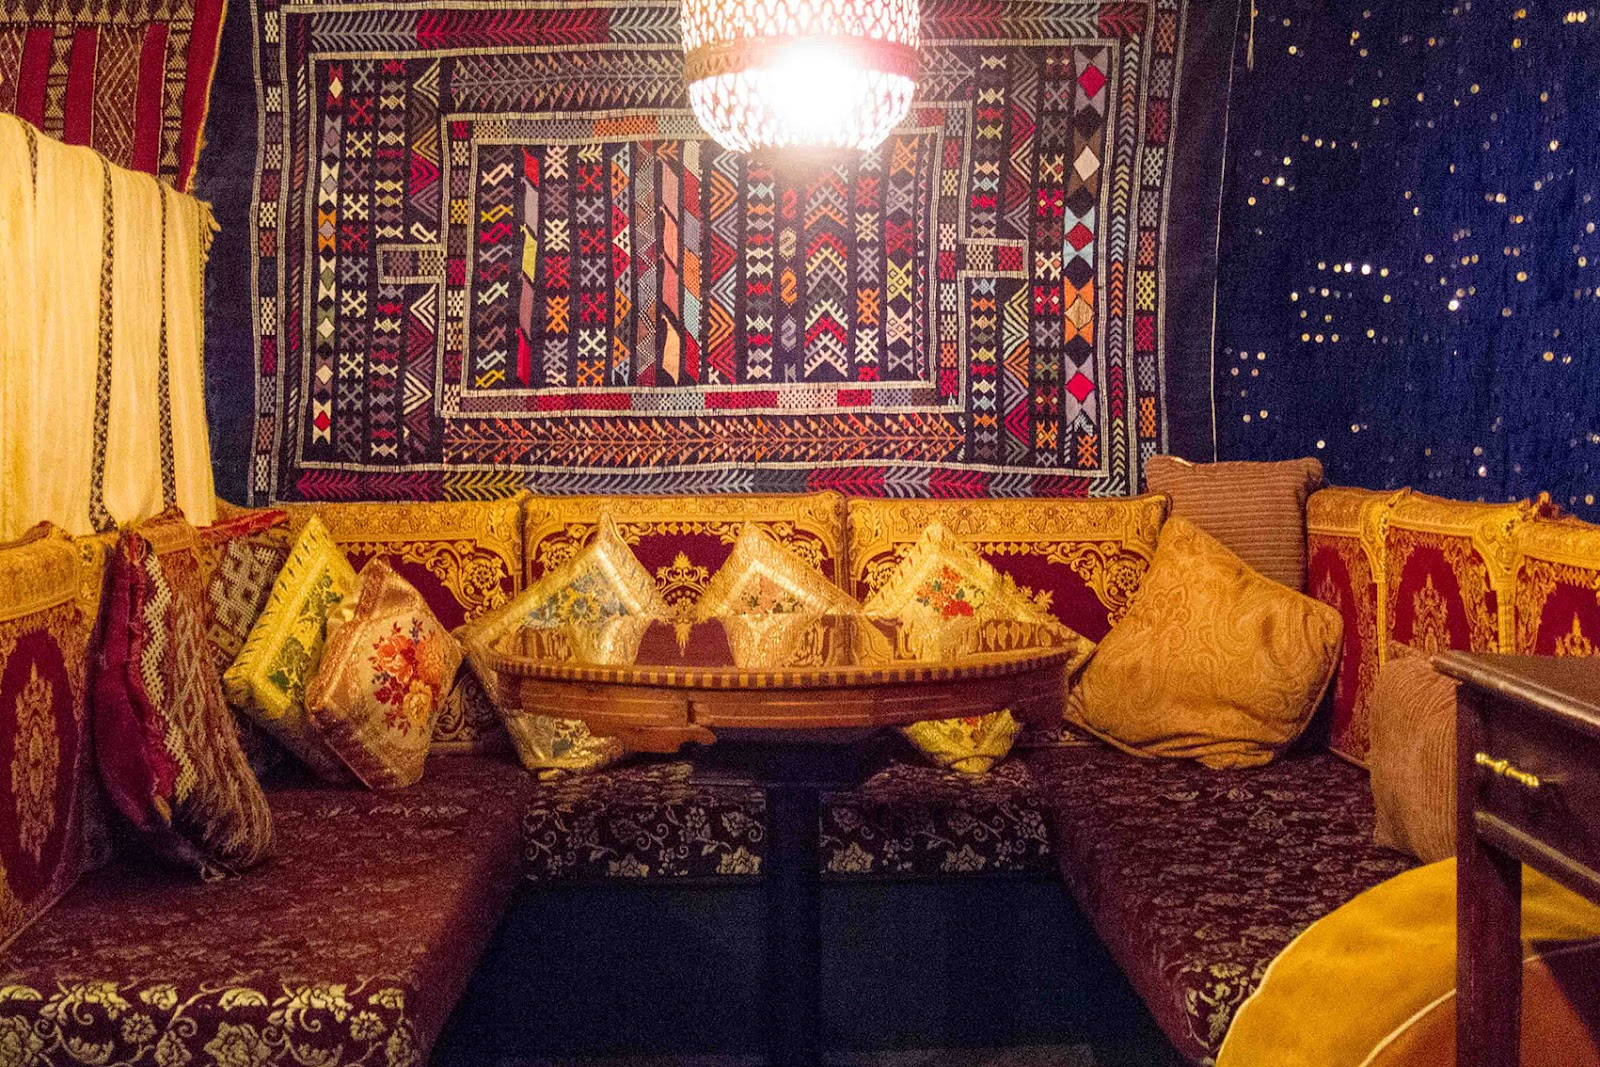 table.at.sultanu0027s.tent & wine.dine.explore: Dutch Pancakes and Moroccan Cuisine in Calgary